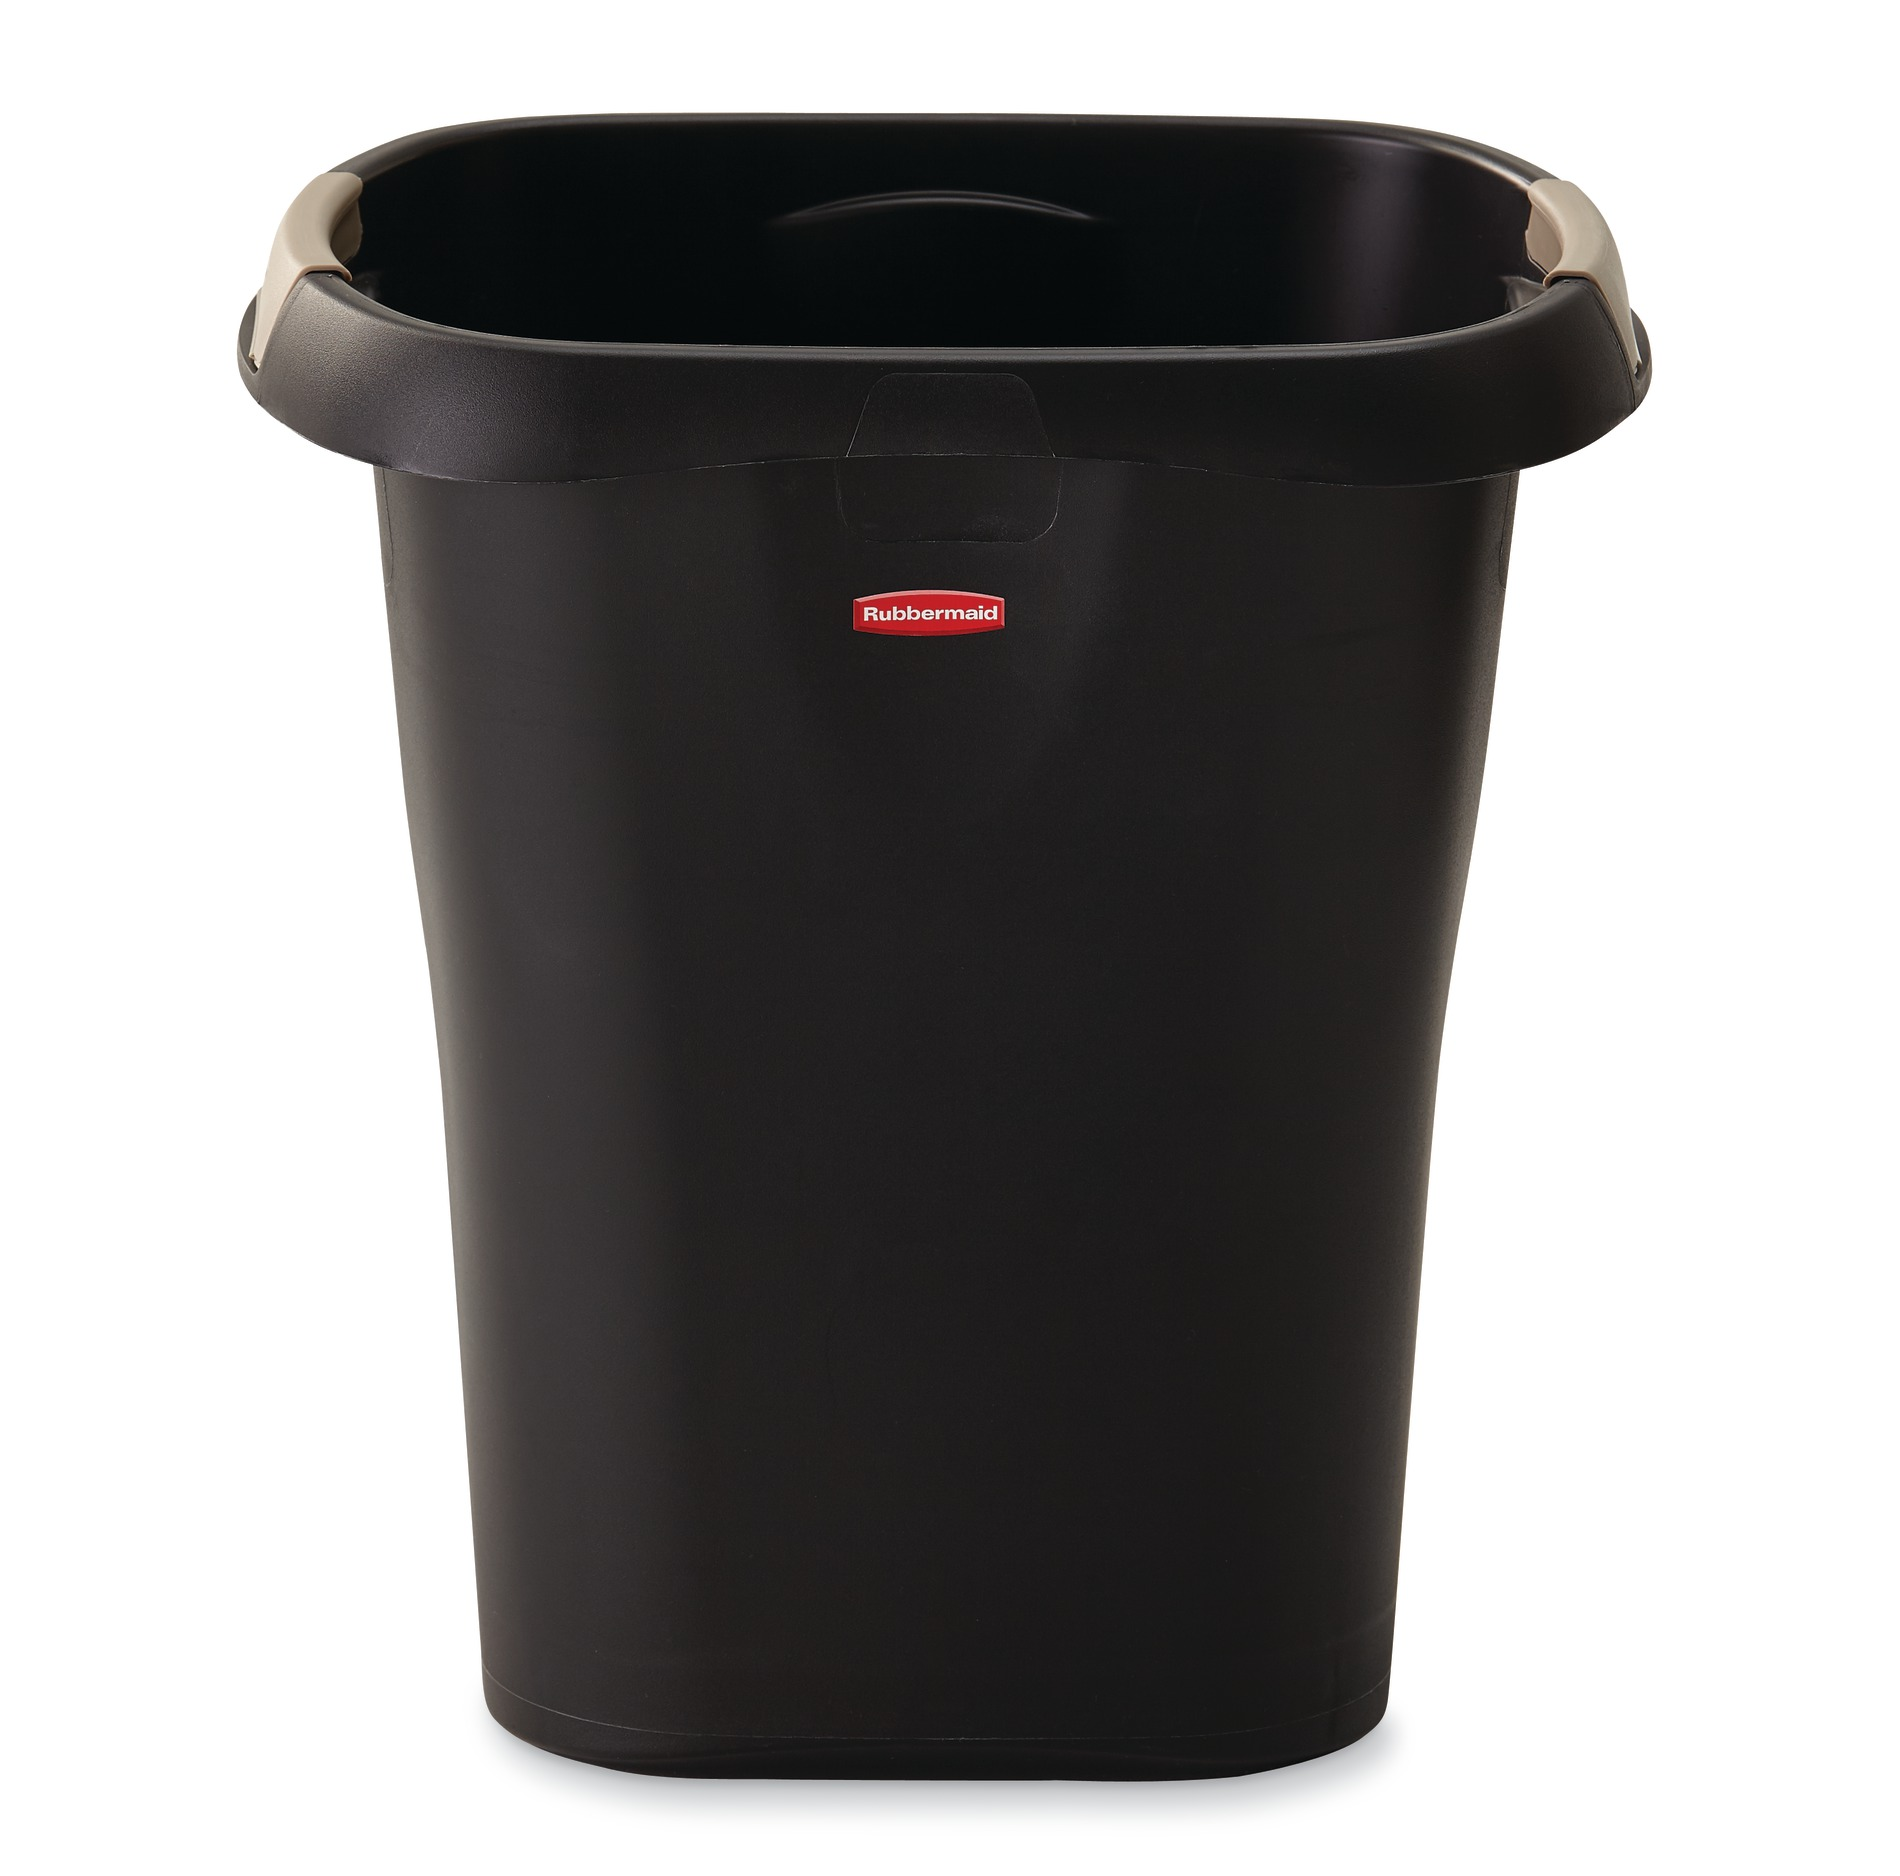 trash cans kitchen cabinet brands garbage sears rubbermaid 21 quart liner lock waste basket black